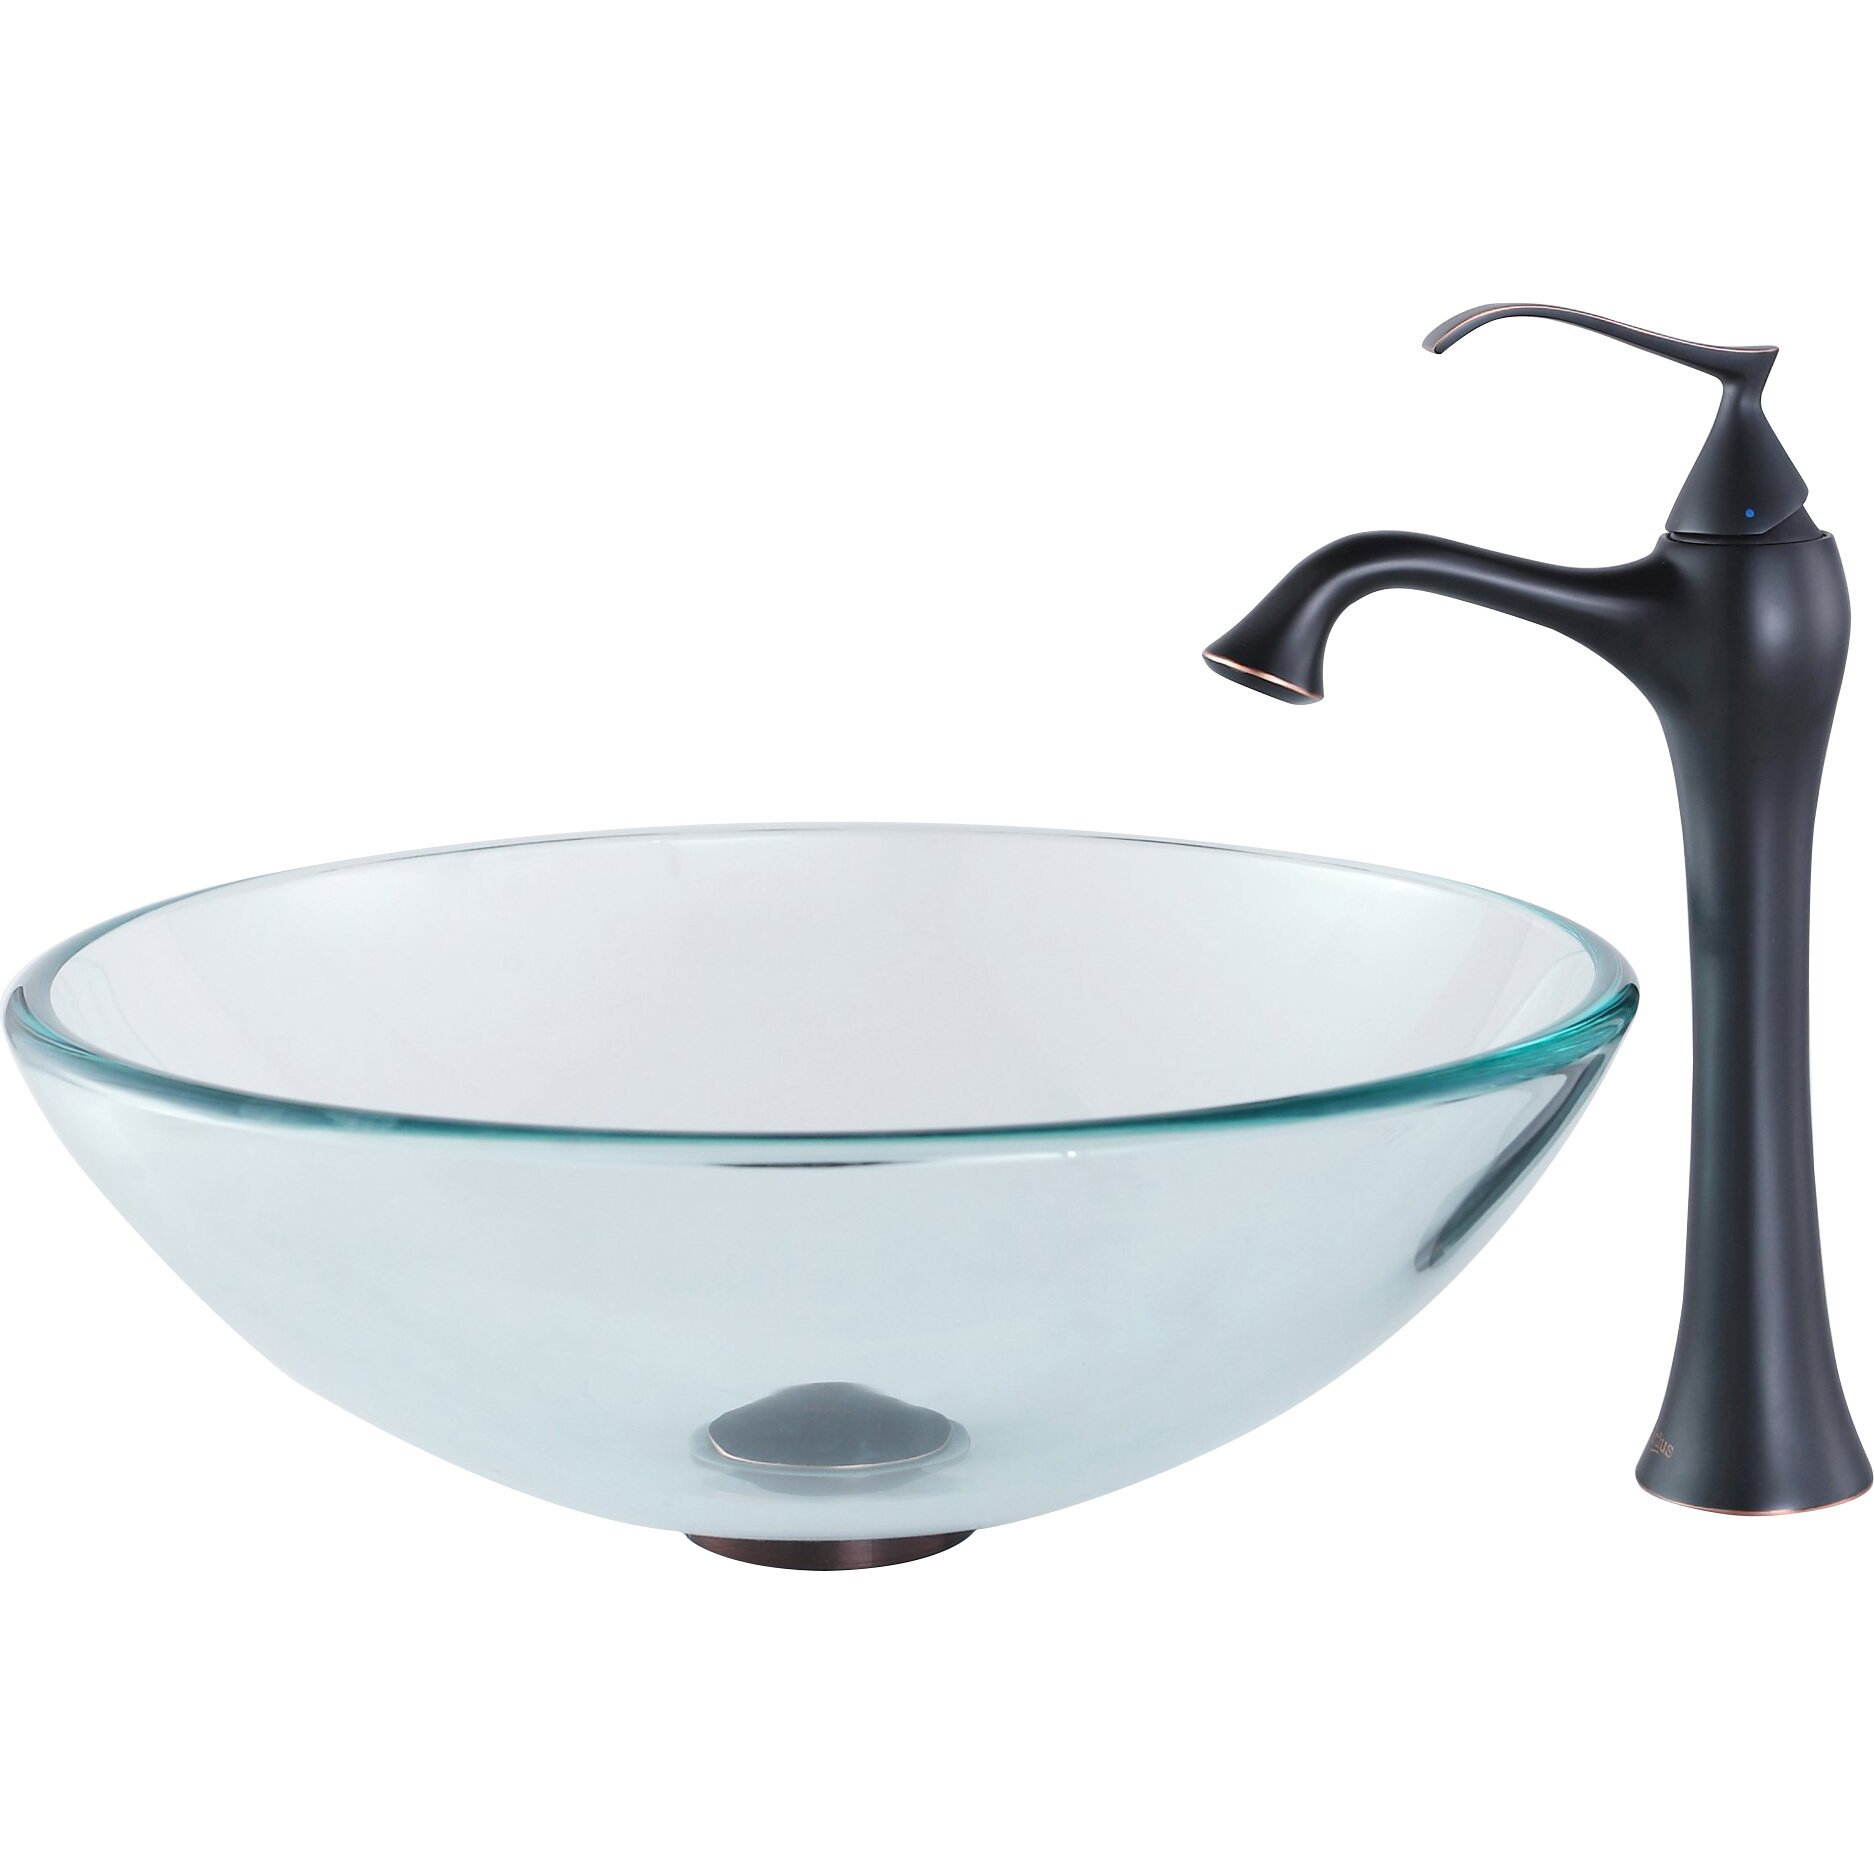 Kraus Glass Vessel Bathroom Sink With Single Handle Single Hole Faucet Reviews Wayfair